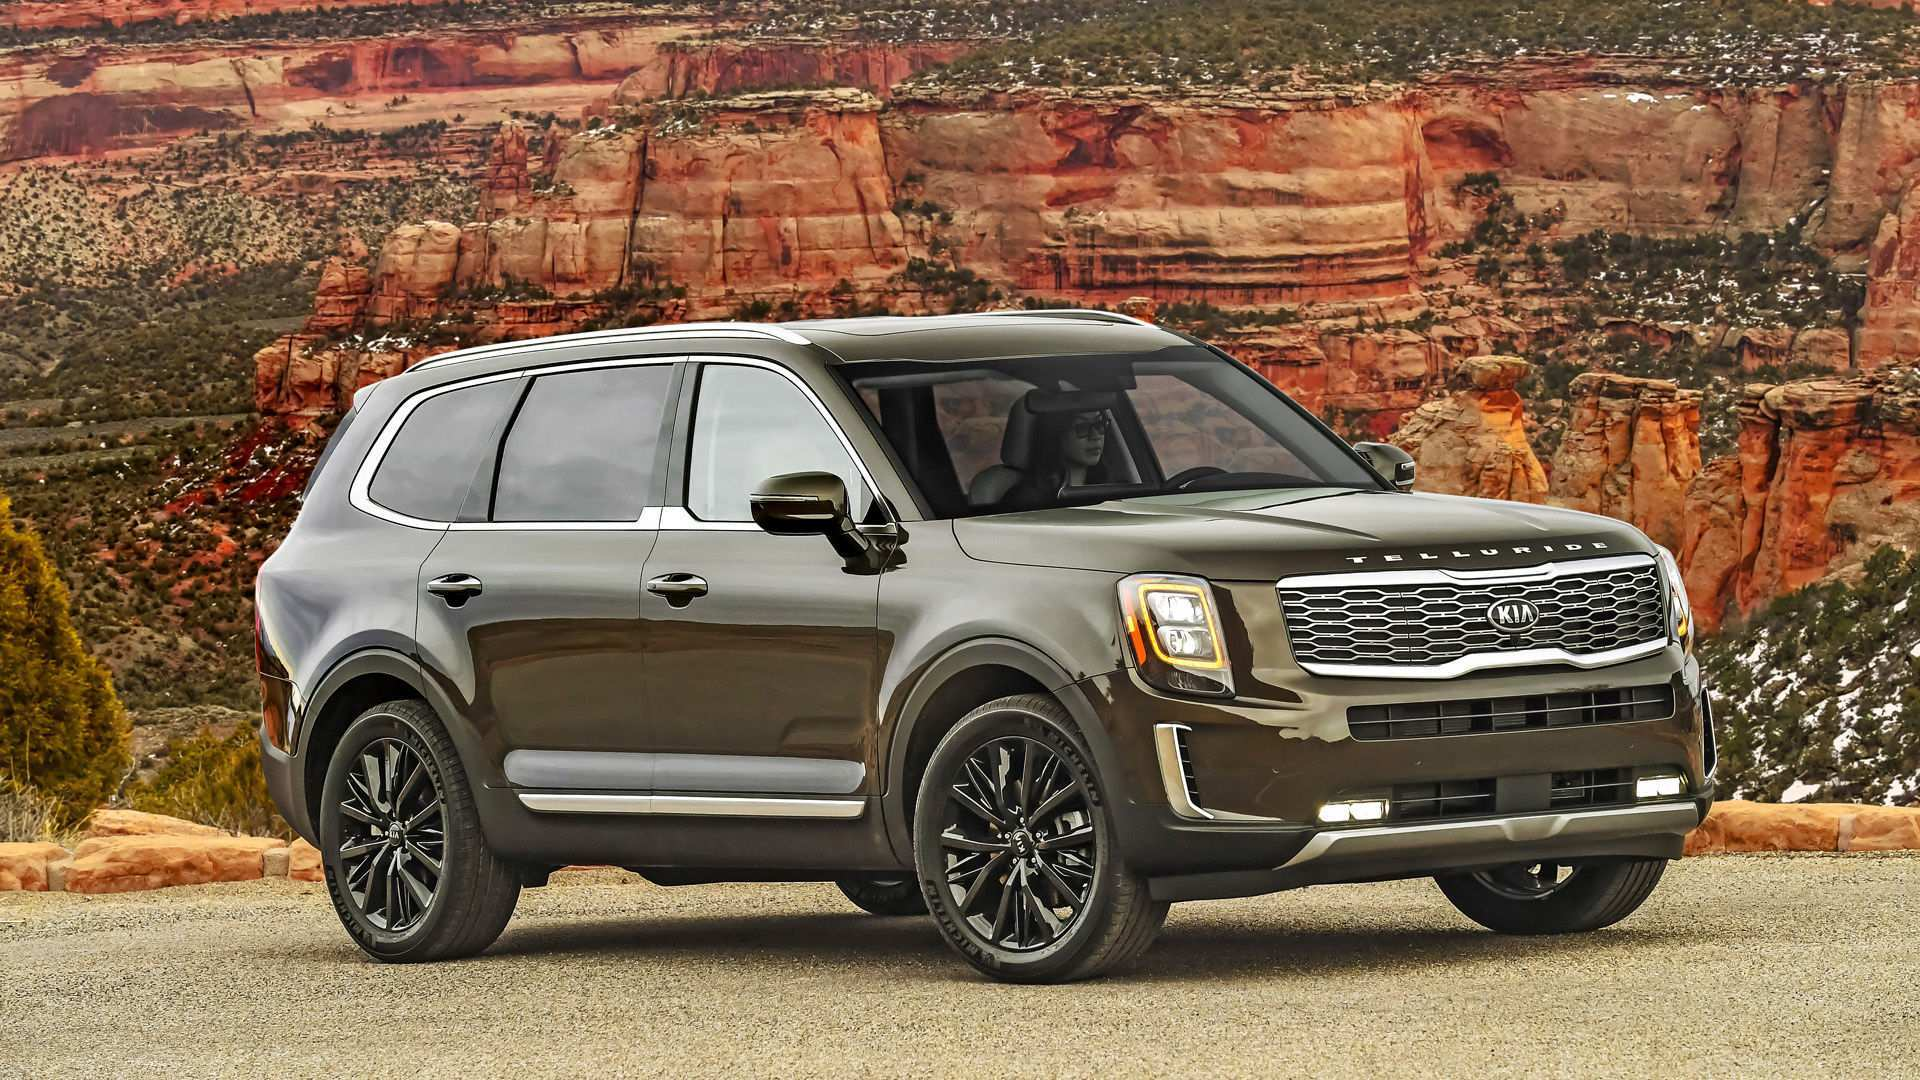 44 All New 2020 Kia Telluride Brochure History by 2020 Kia Telluride Brochure